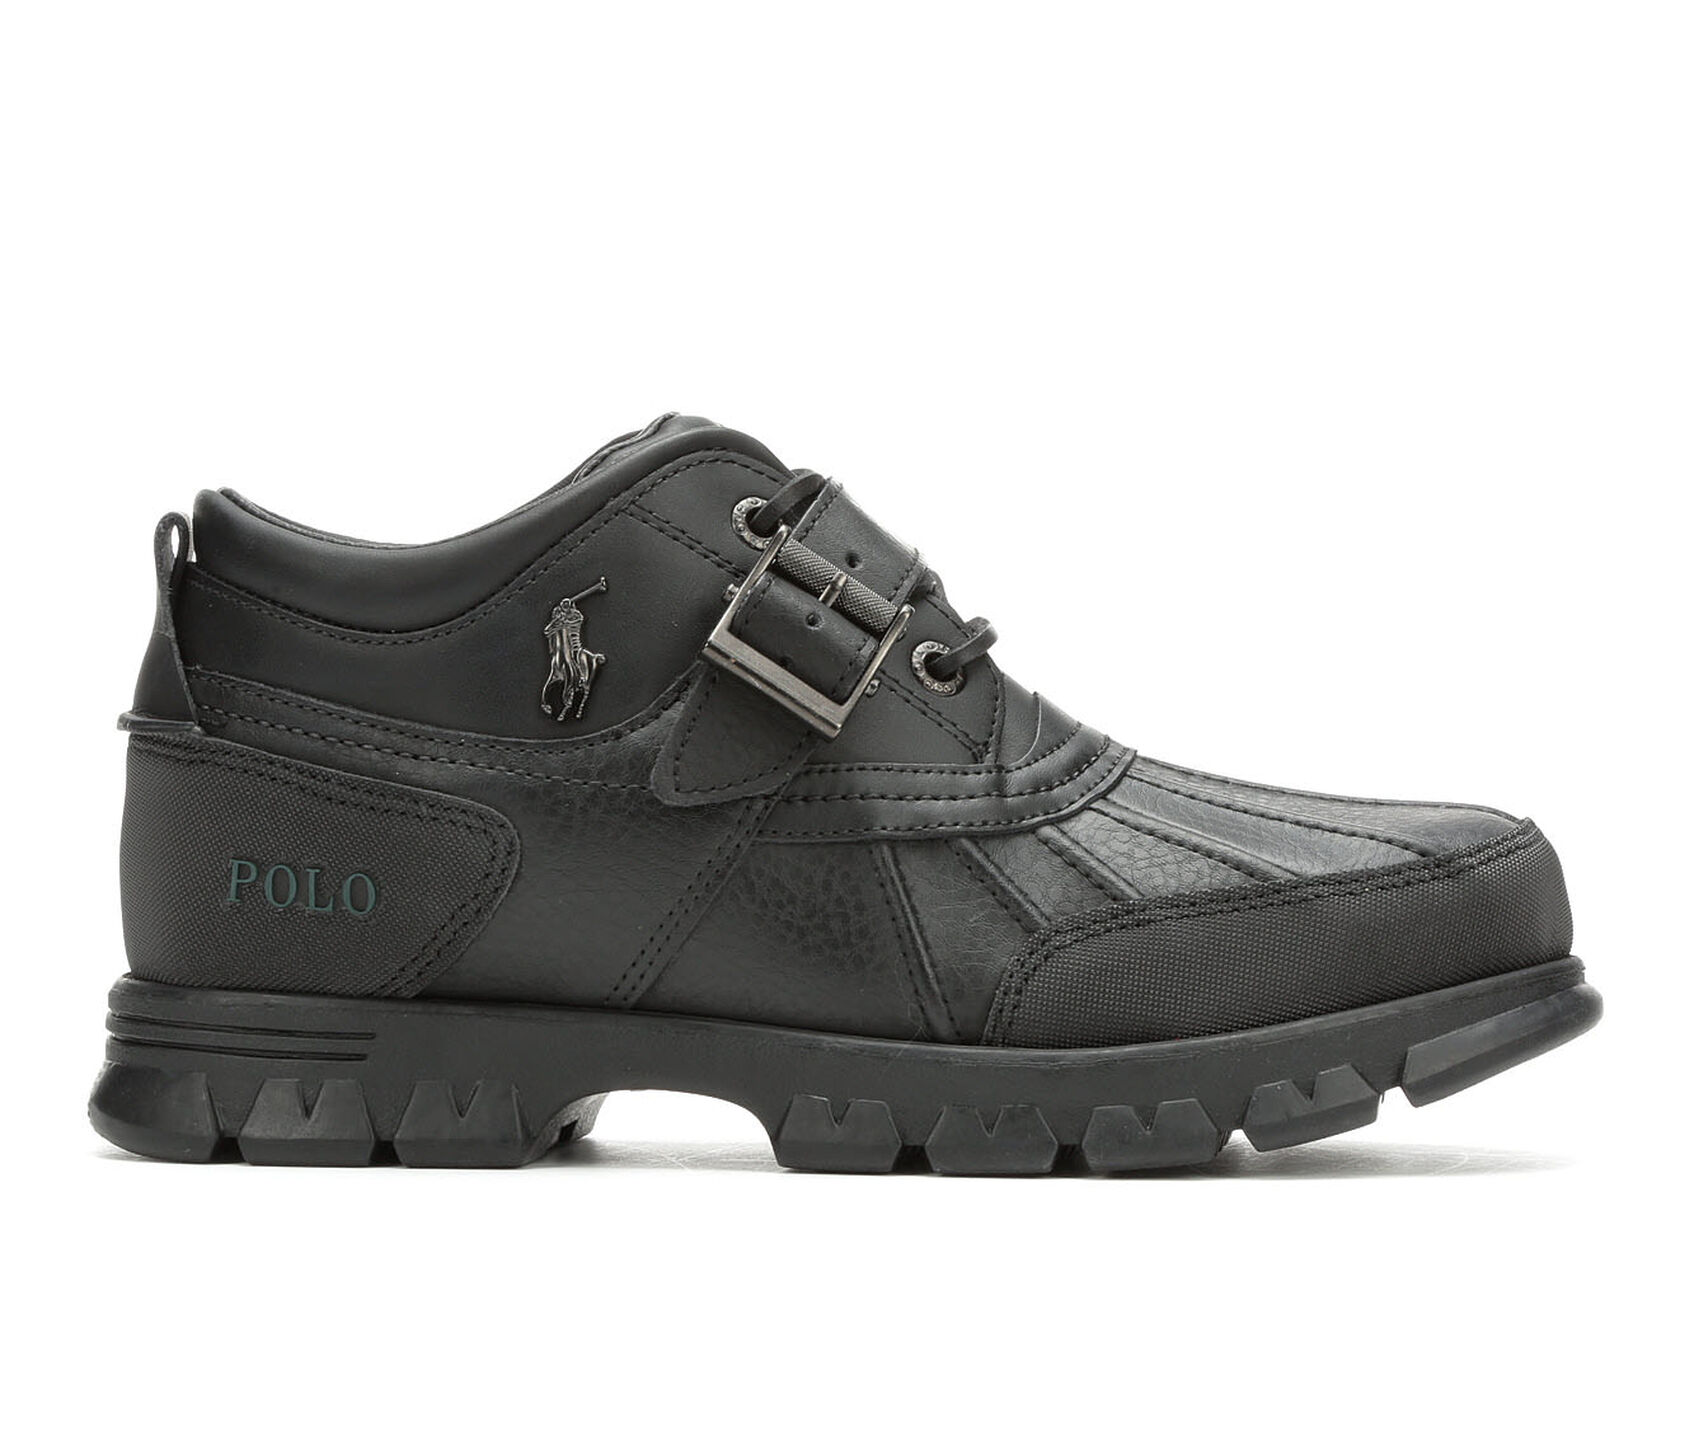 a797cdc998d3f Men s Polo Dover III Casual Boots